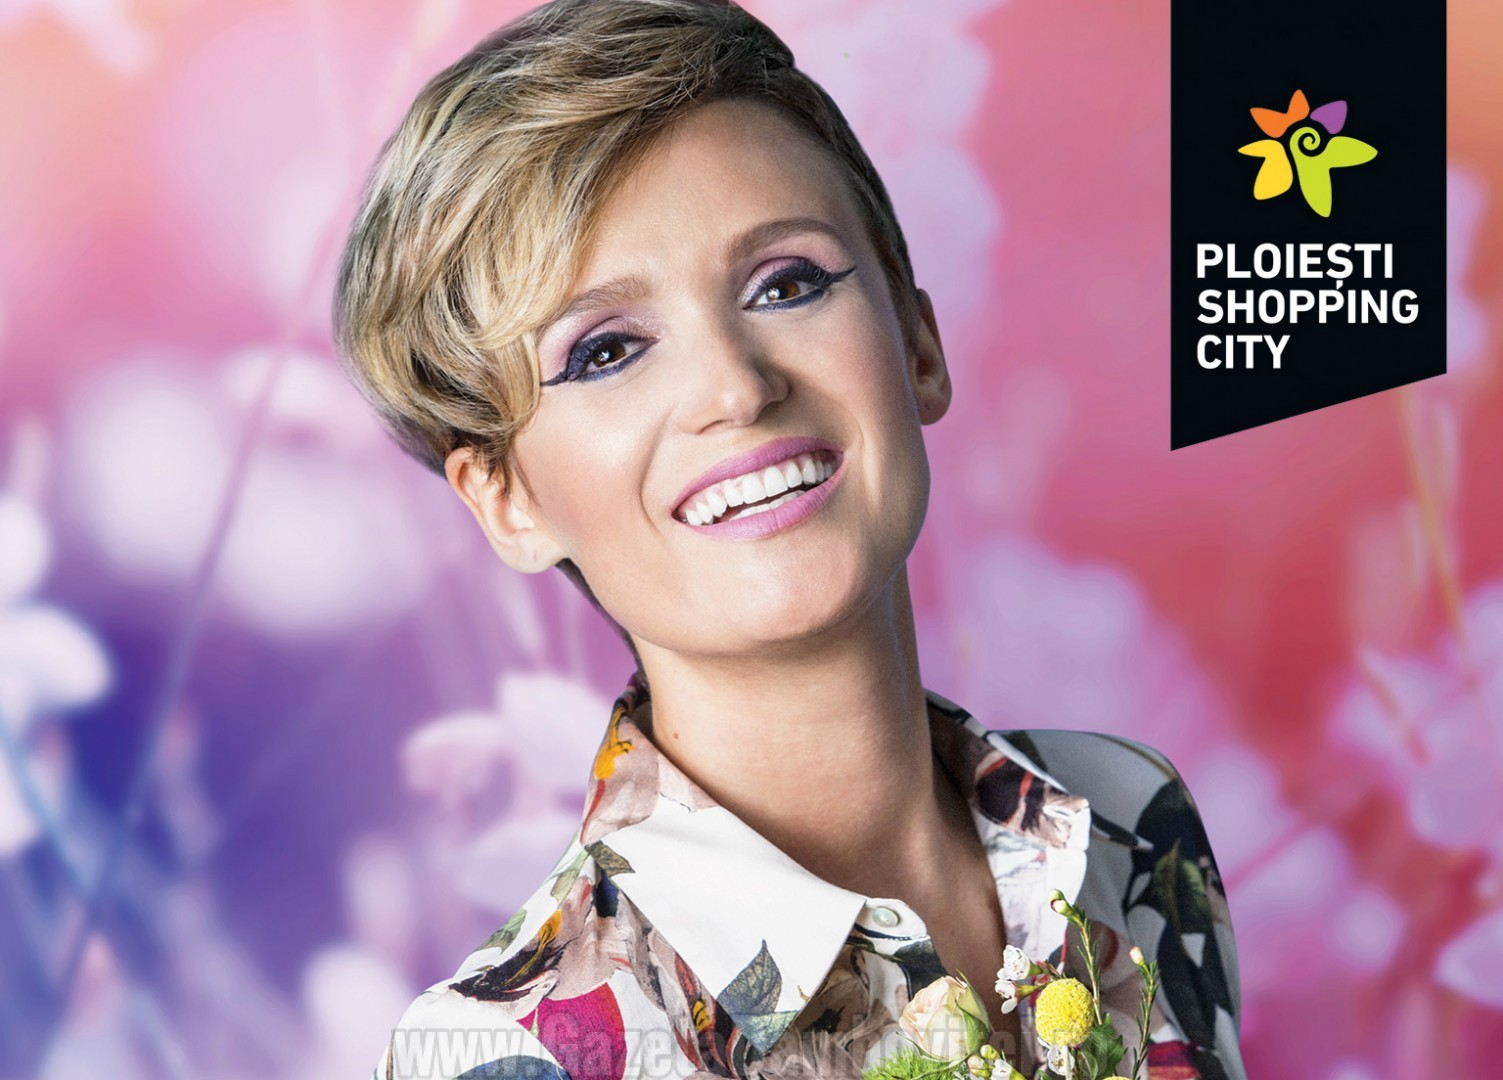 Ploieşti Shopping City: Fashion & Beauty Corner